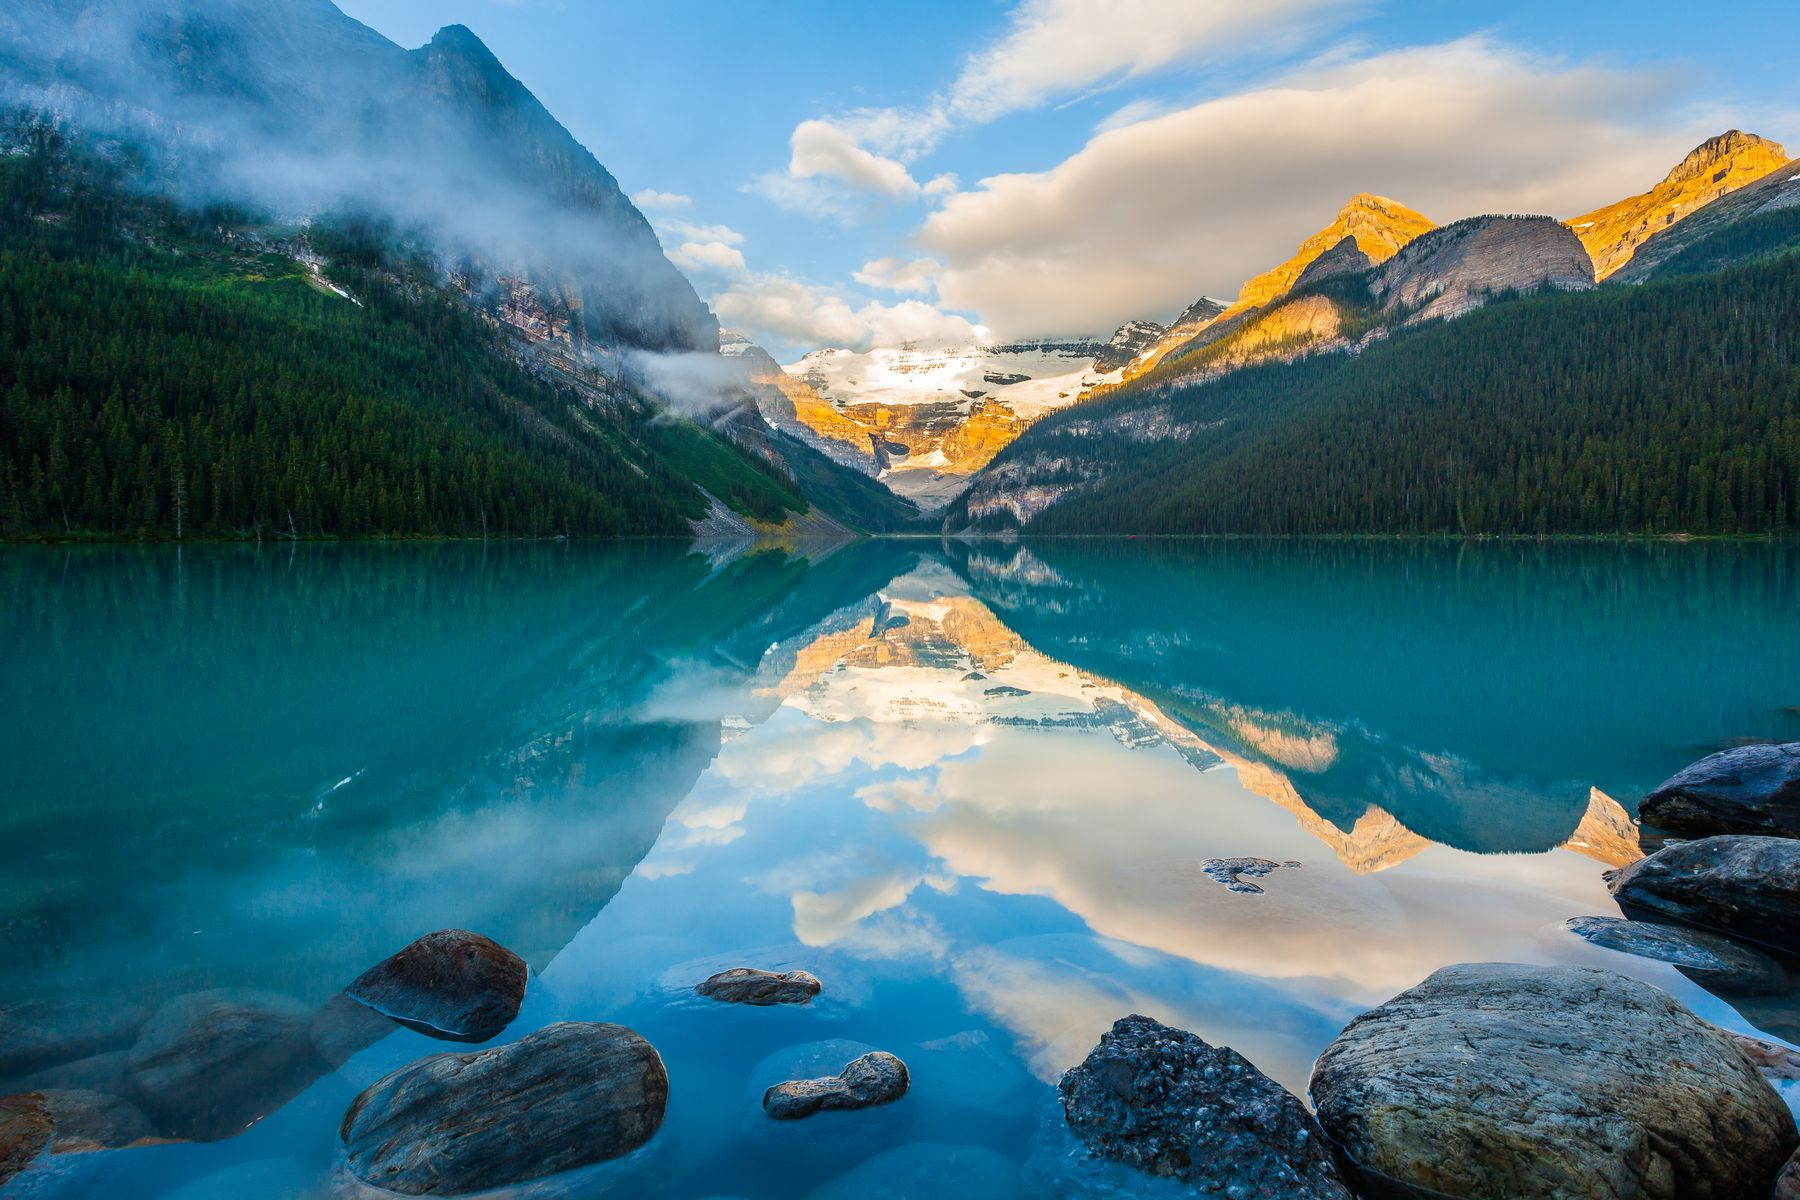 turquoise hues of Lake Louise with snowy mountains in the backround